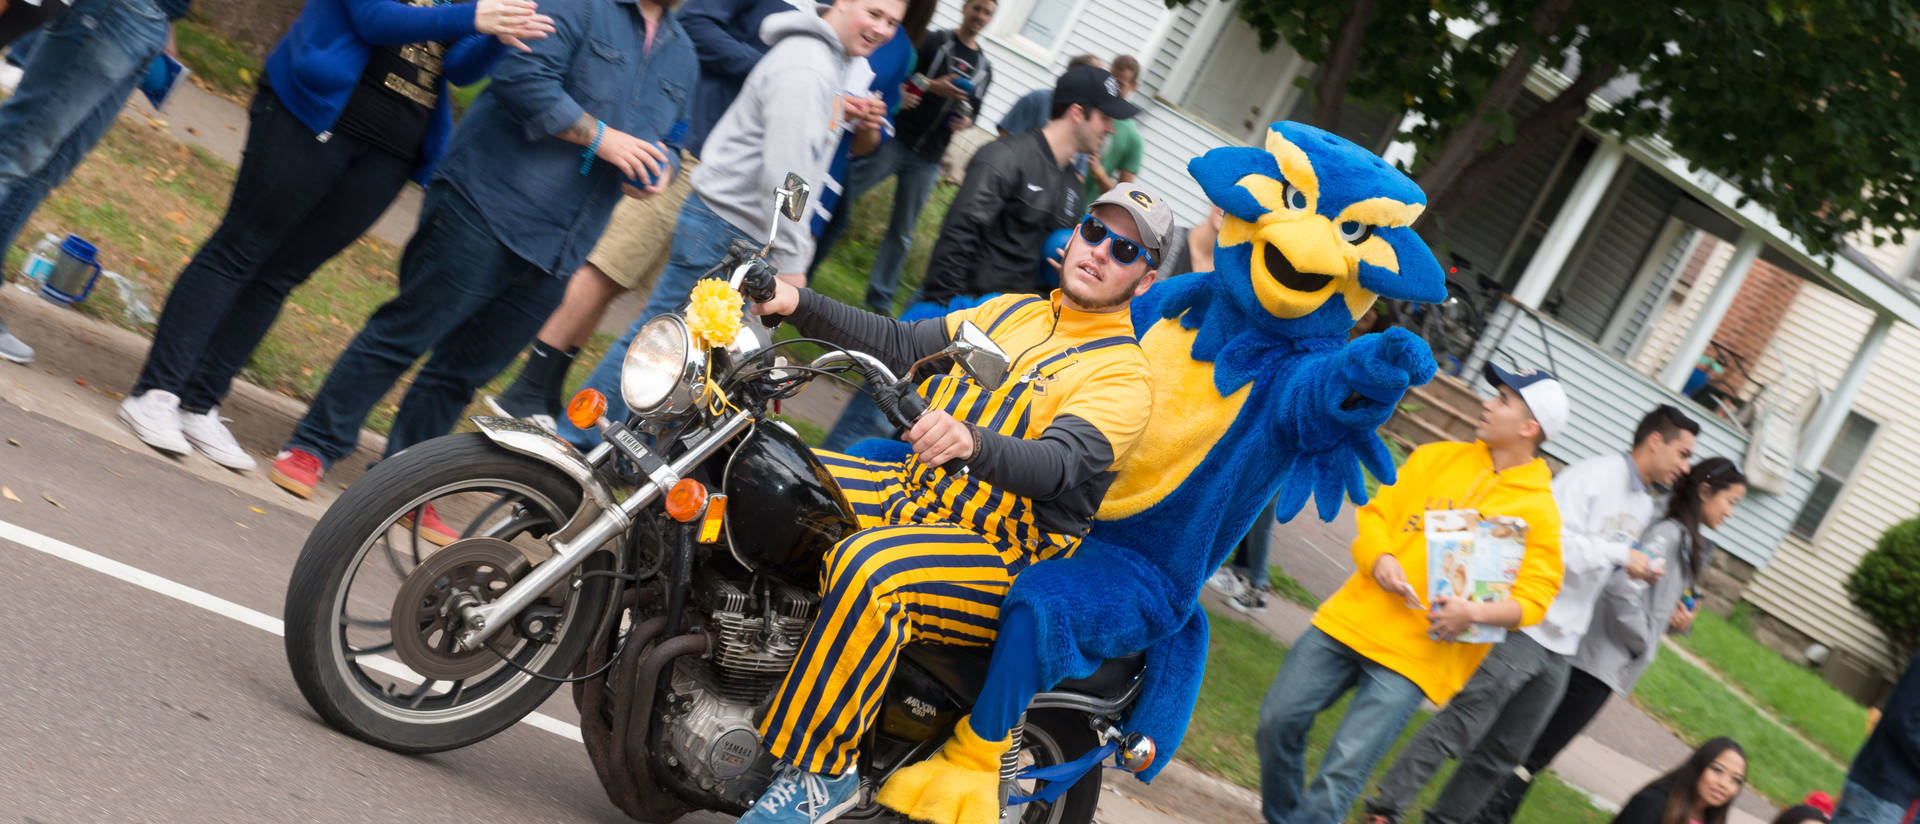 Homecoming Parade, Blu on a motorcycle